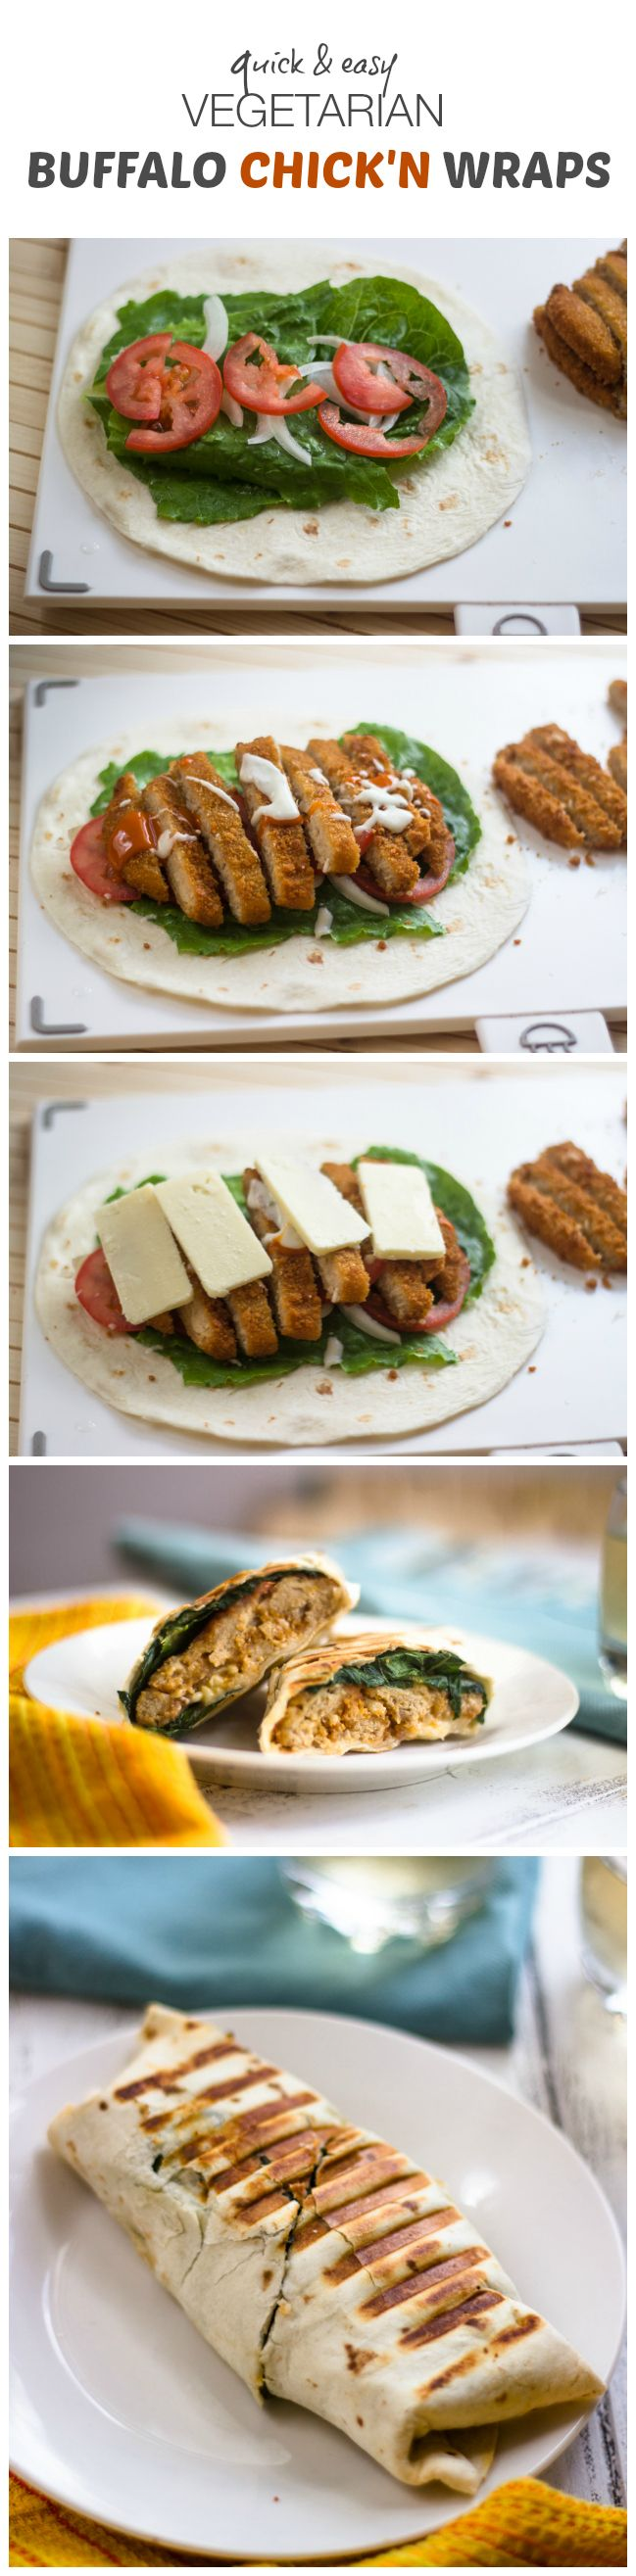 13 best winter recipes images on pinterest vegan recipes quick easy vegetarian buffalo chicken wraps forumfinder Choice Image